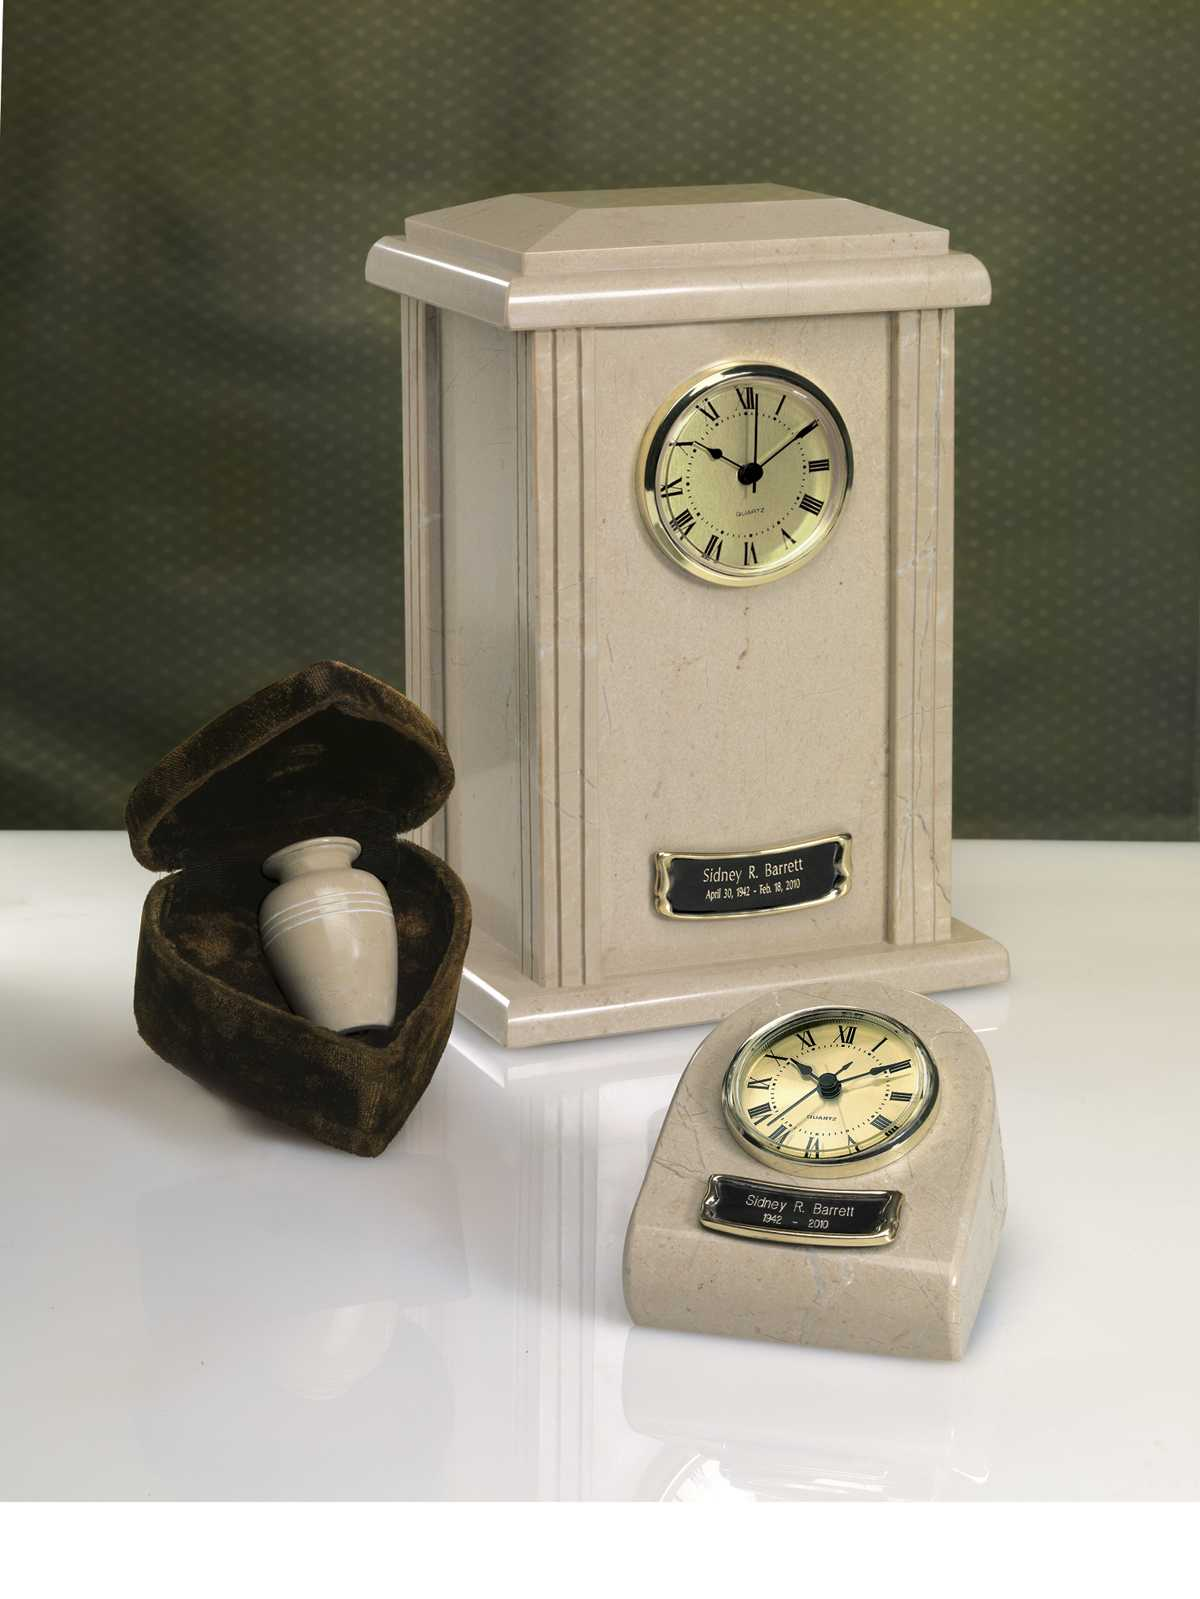 Marble Clock Tower Urn Cream Wash Finish $37-$150